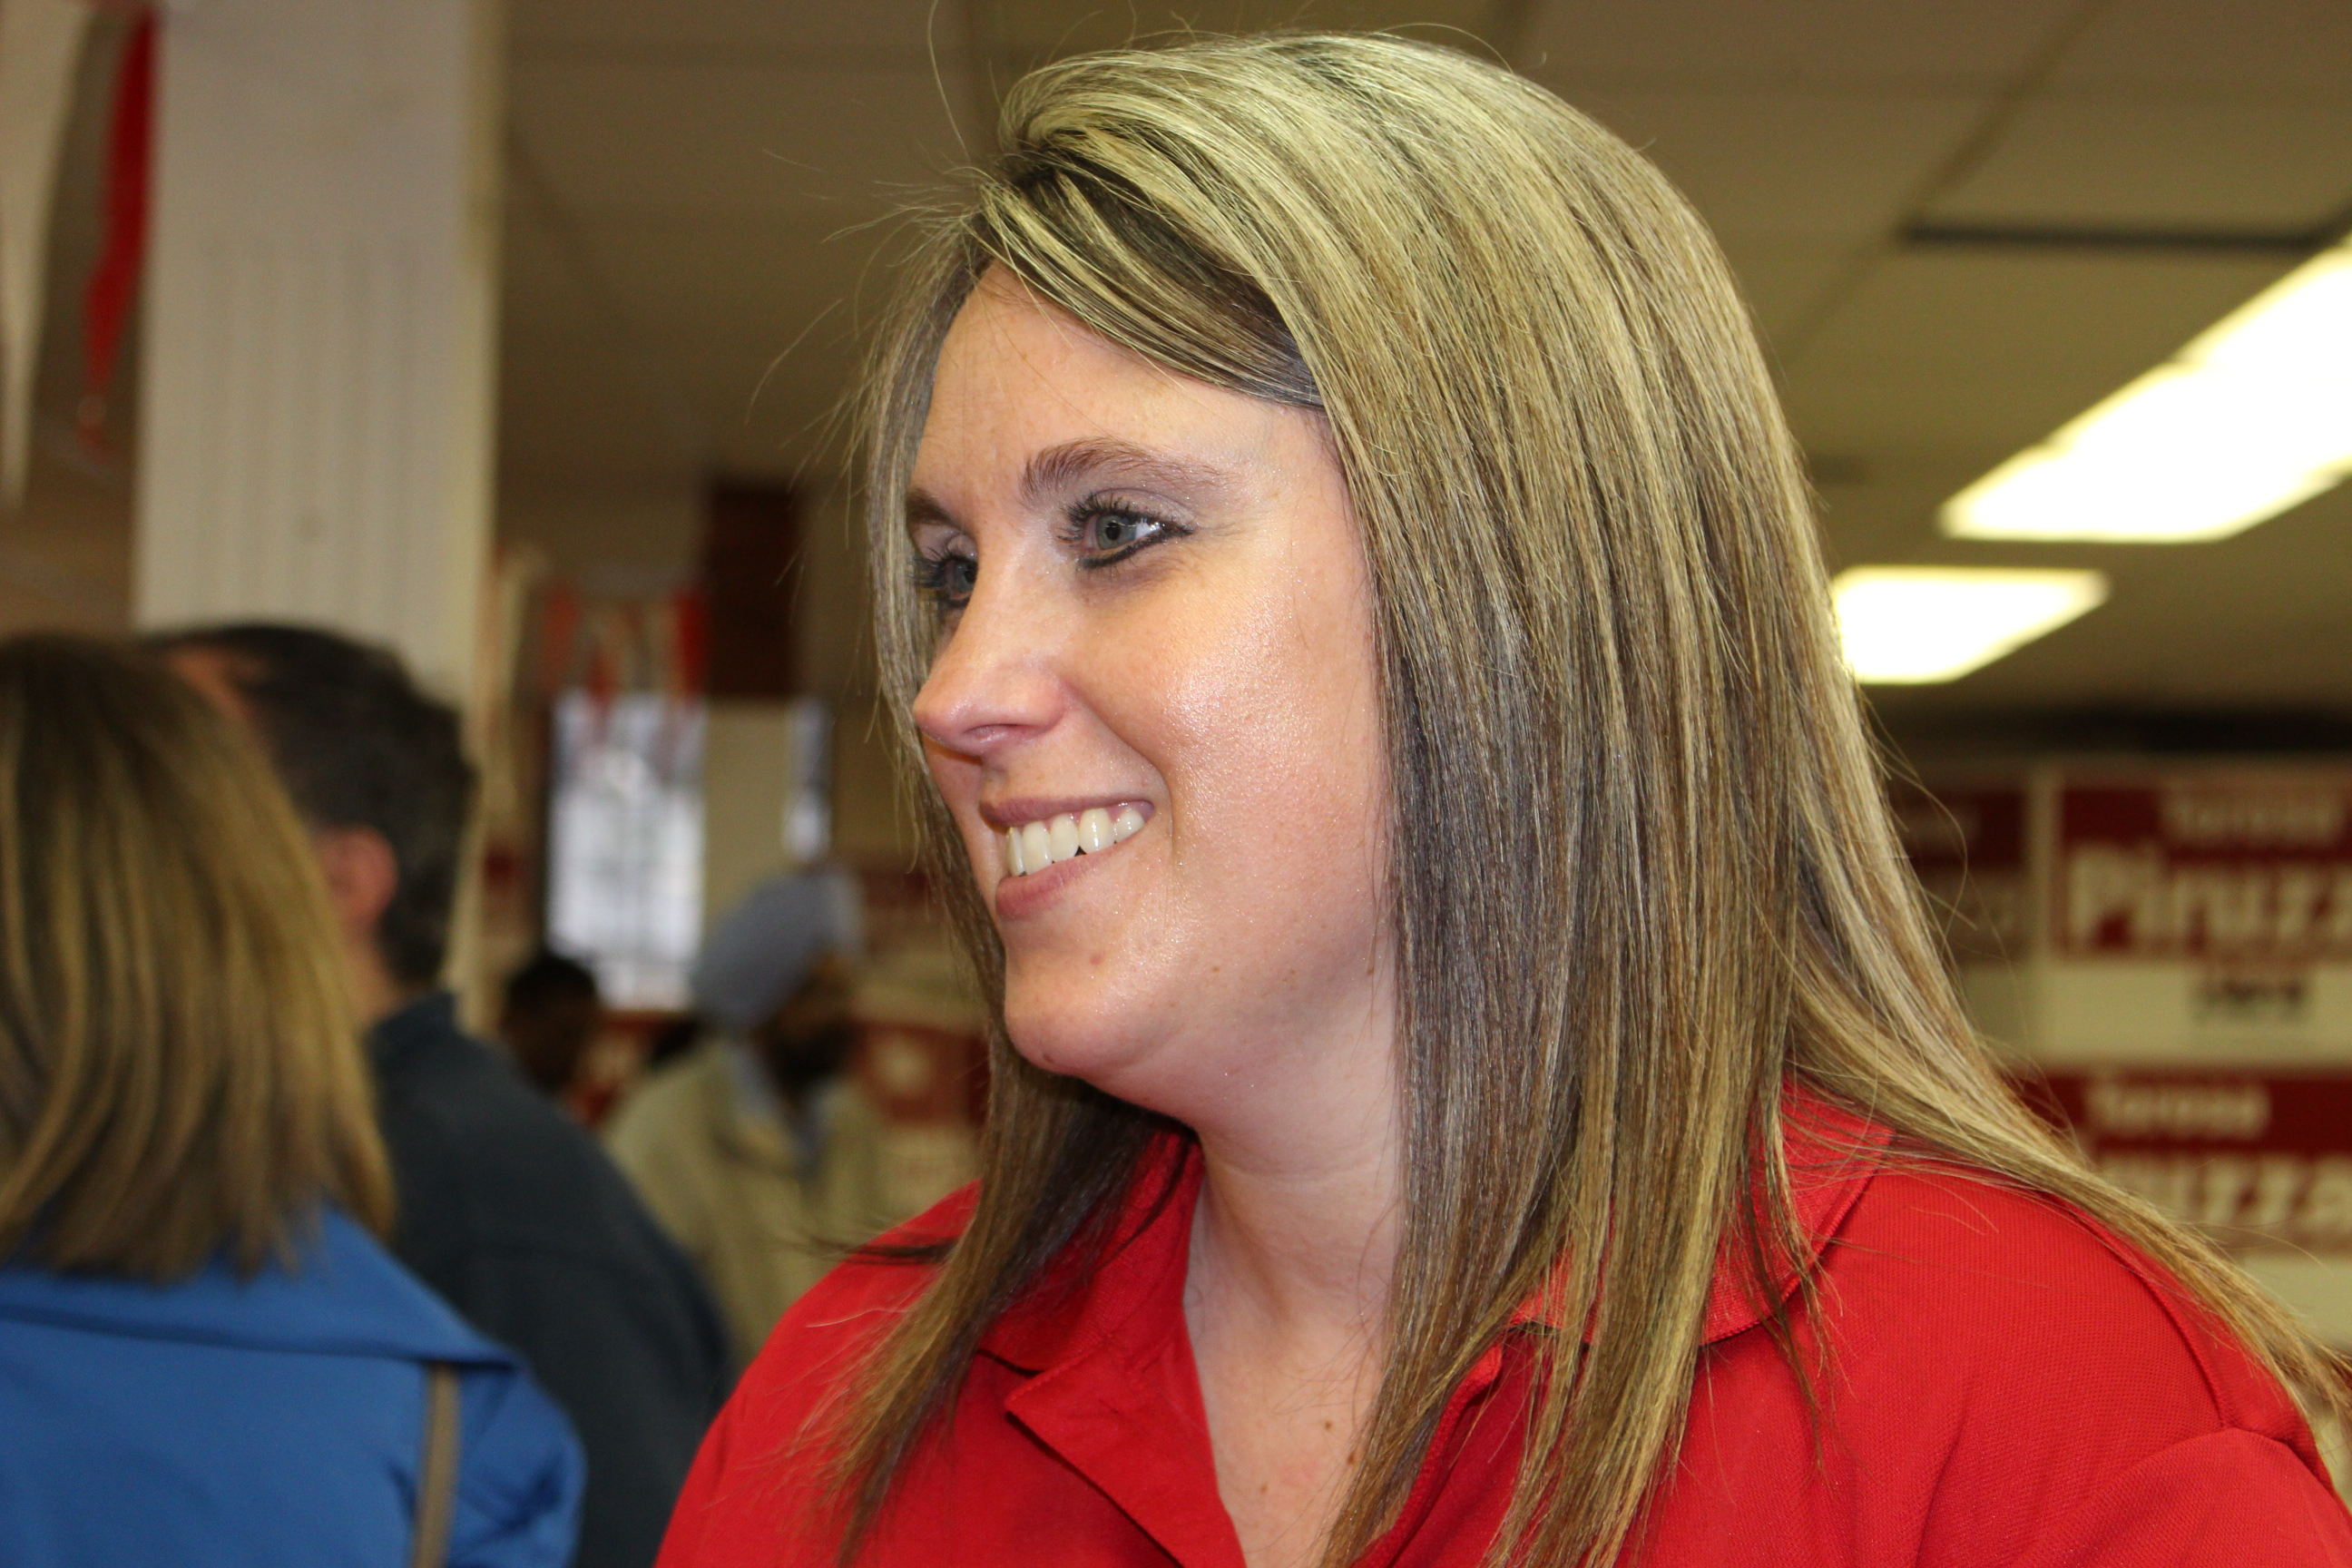 The most recent Liberal candidate for the Essex riding, Crystal Meloche attends Ontario Liberal campaign launch event on May 7, 2014. (Photo by Ricardo Veneza)